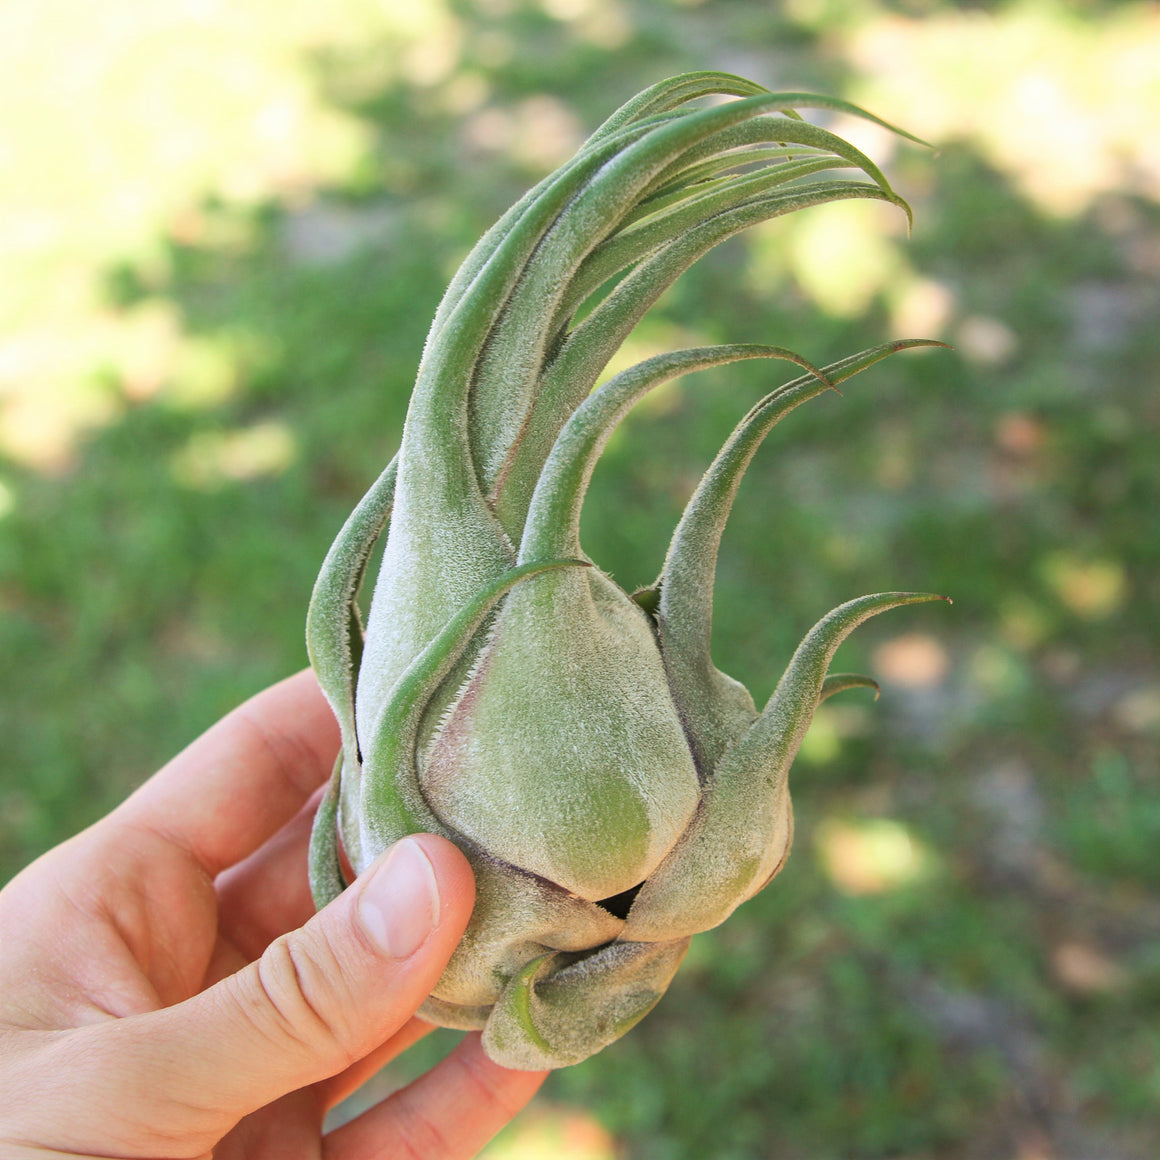 Wholesale Special Air Plants - Jumbo Tillandsia Seleriana Air Plants / 6-8 Inches Tall